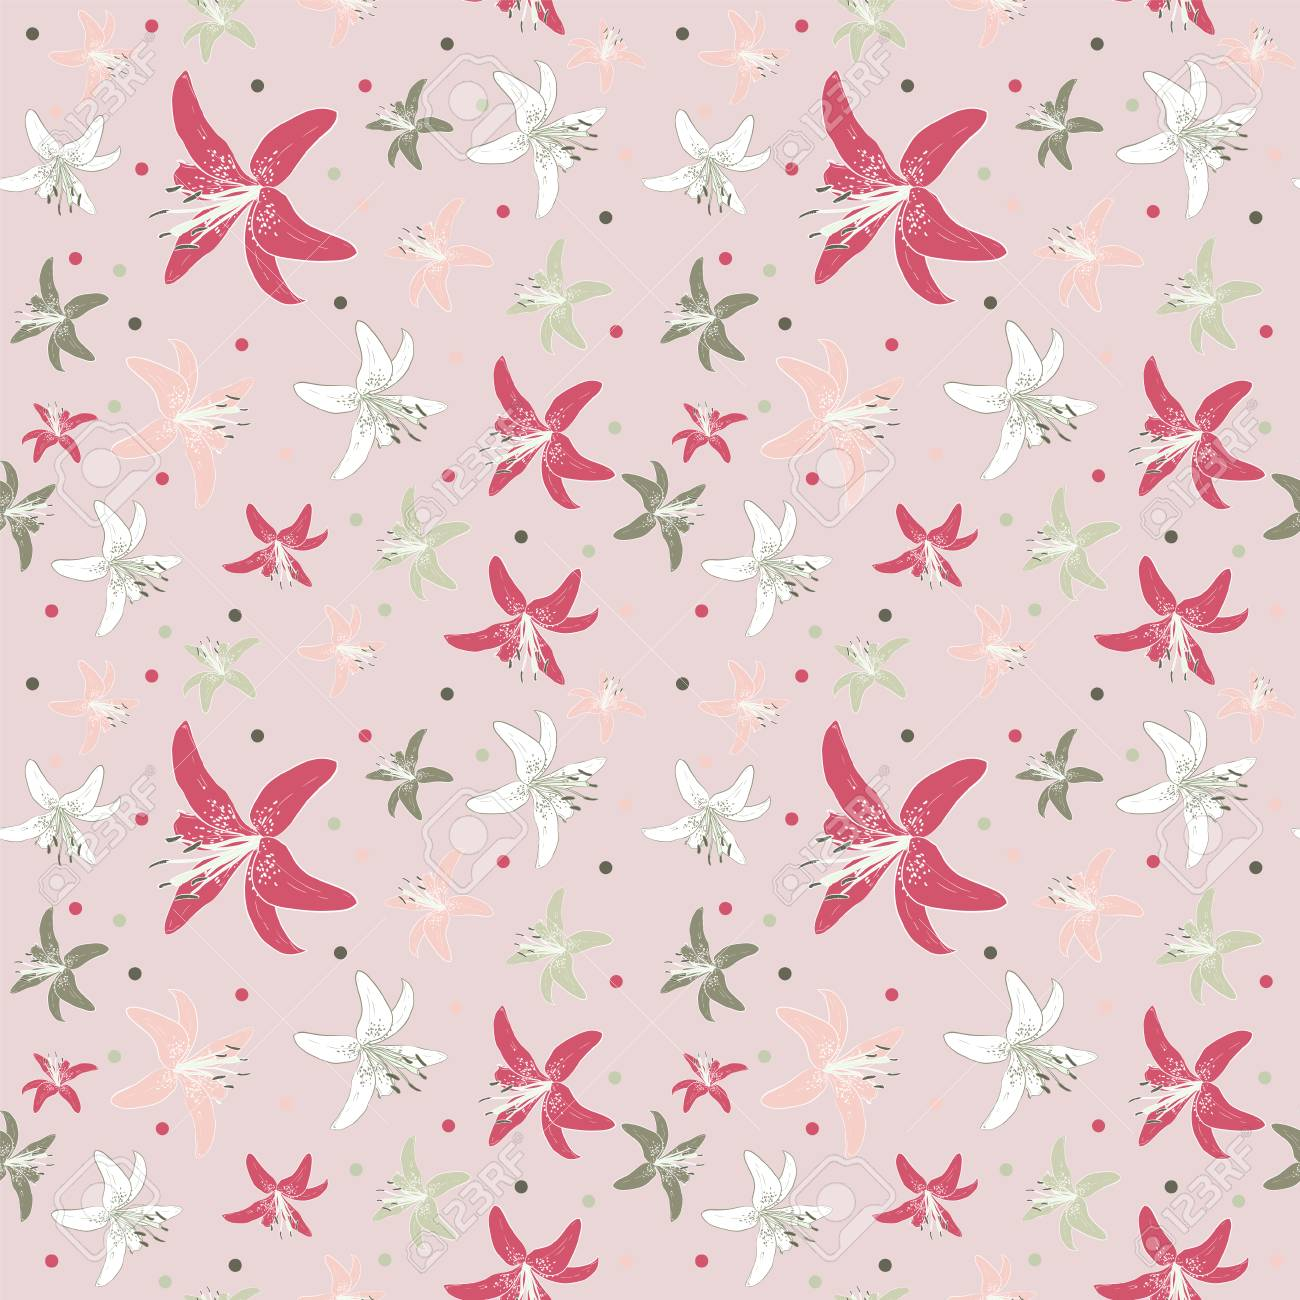 Seamless Colorful Floral Pattern Vector Background With Flowers